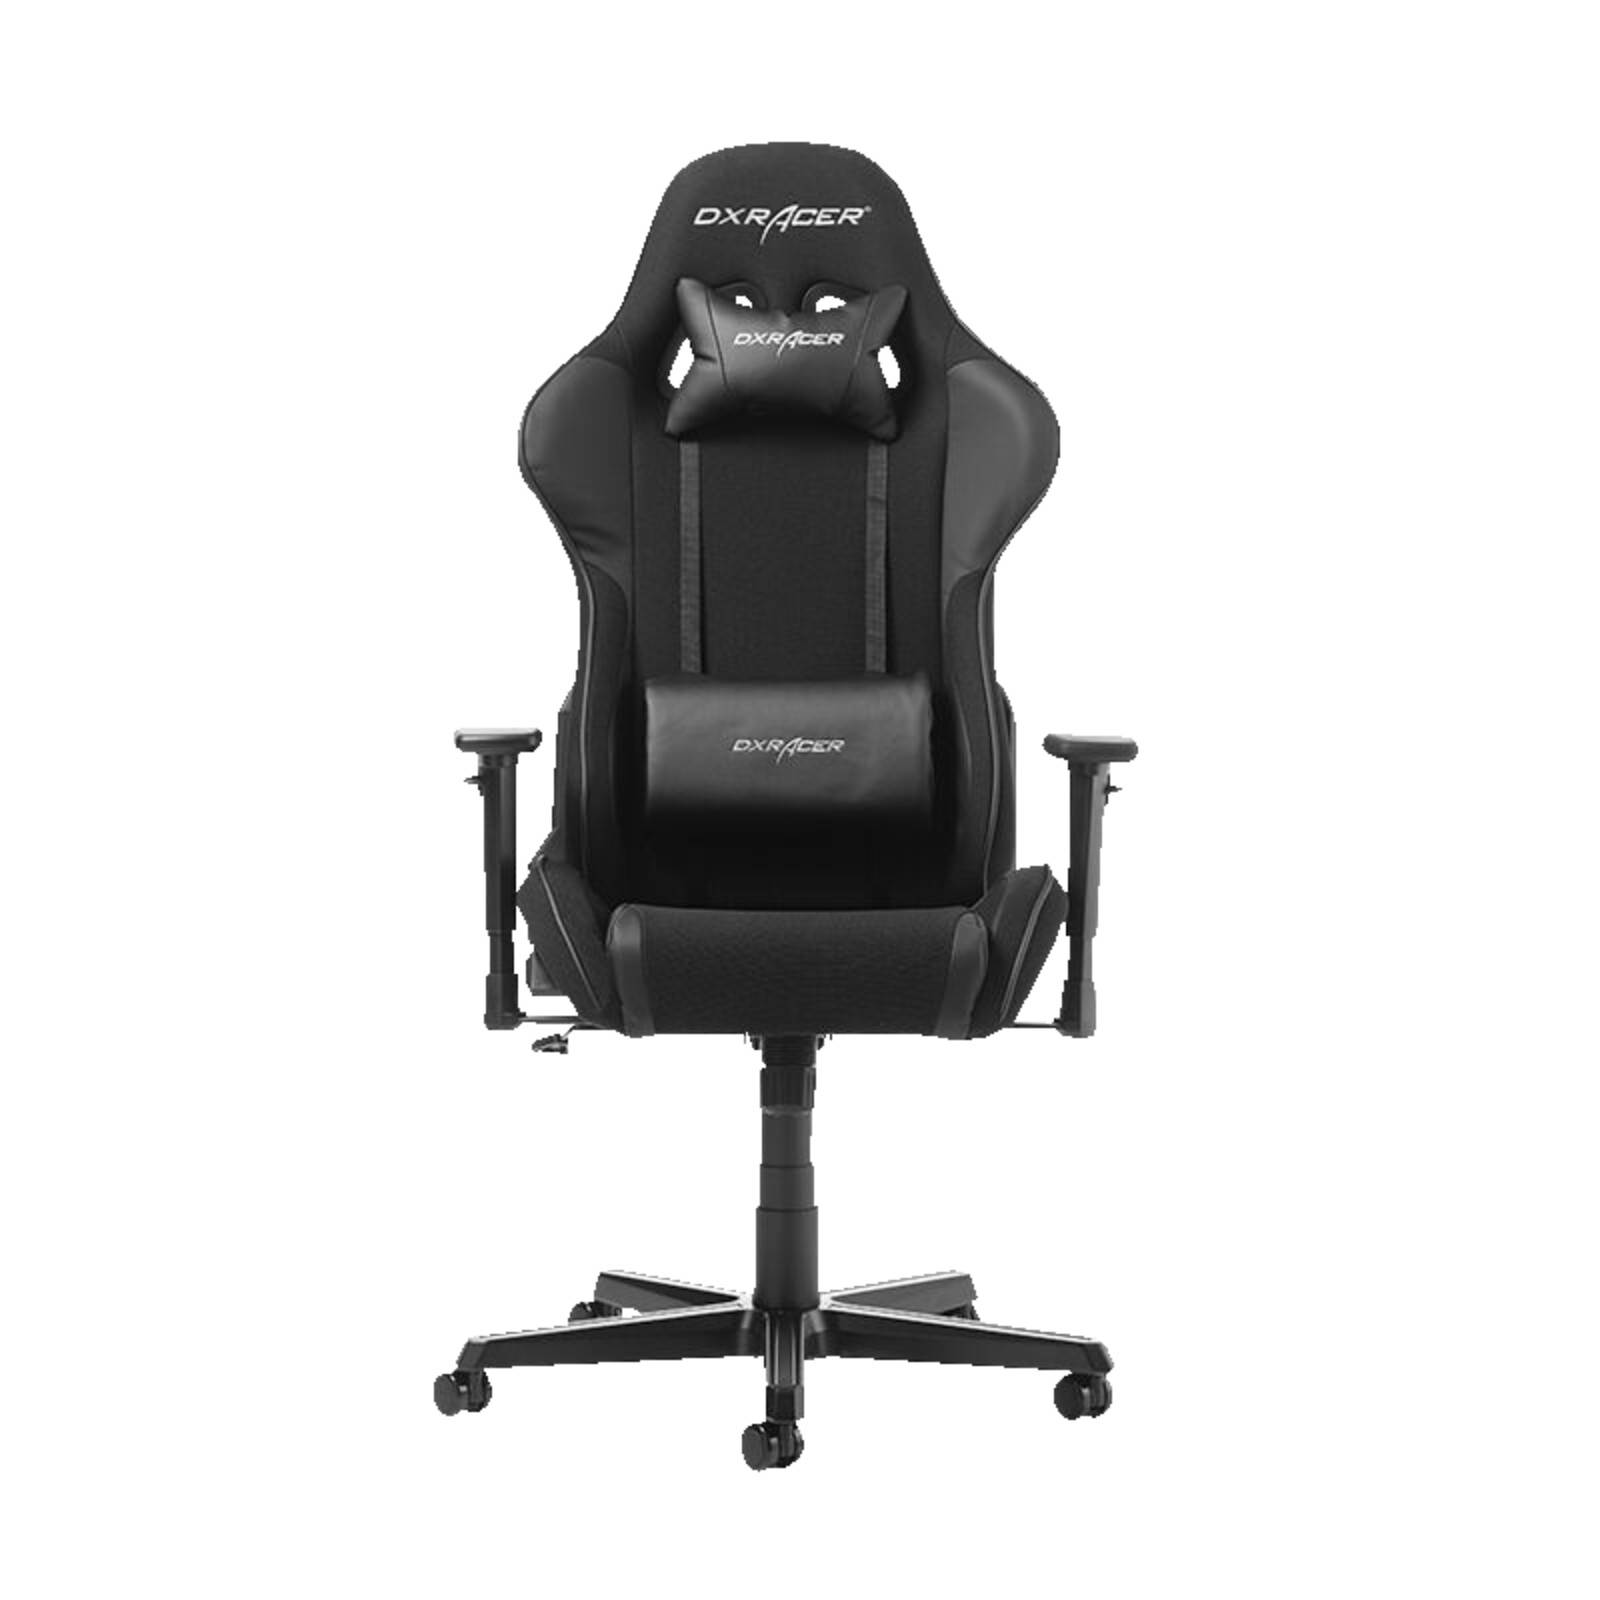 Dxracer Sessel Dxracer Formula F11 Gaming Chair Black Gaming Stuhl Schwarz Ebay